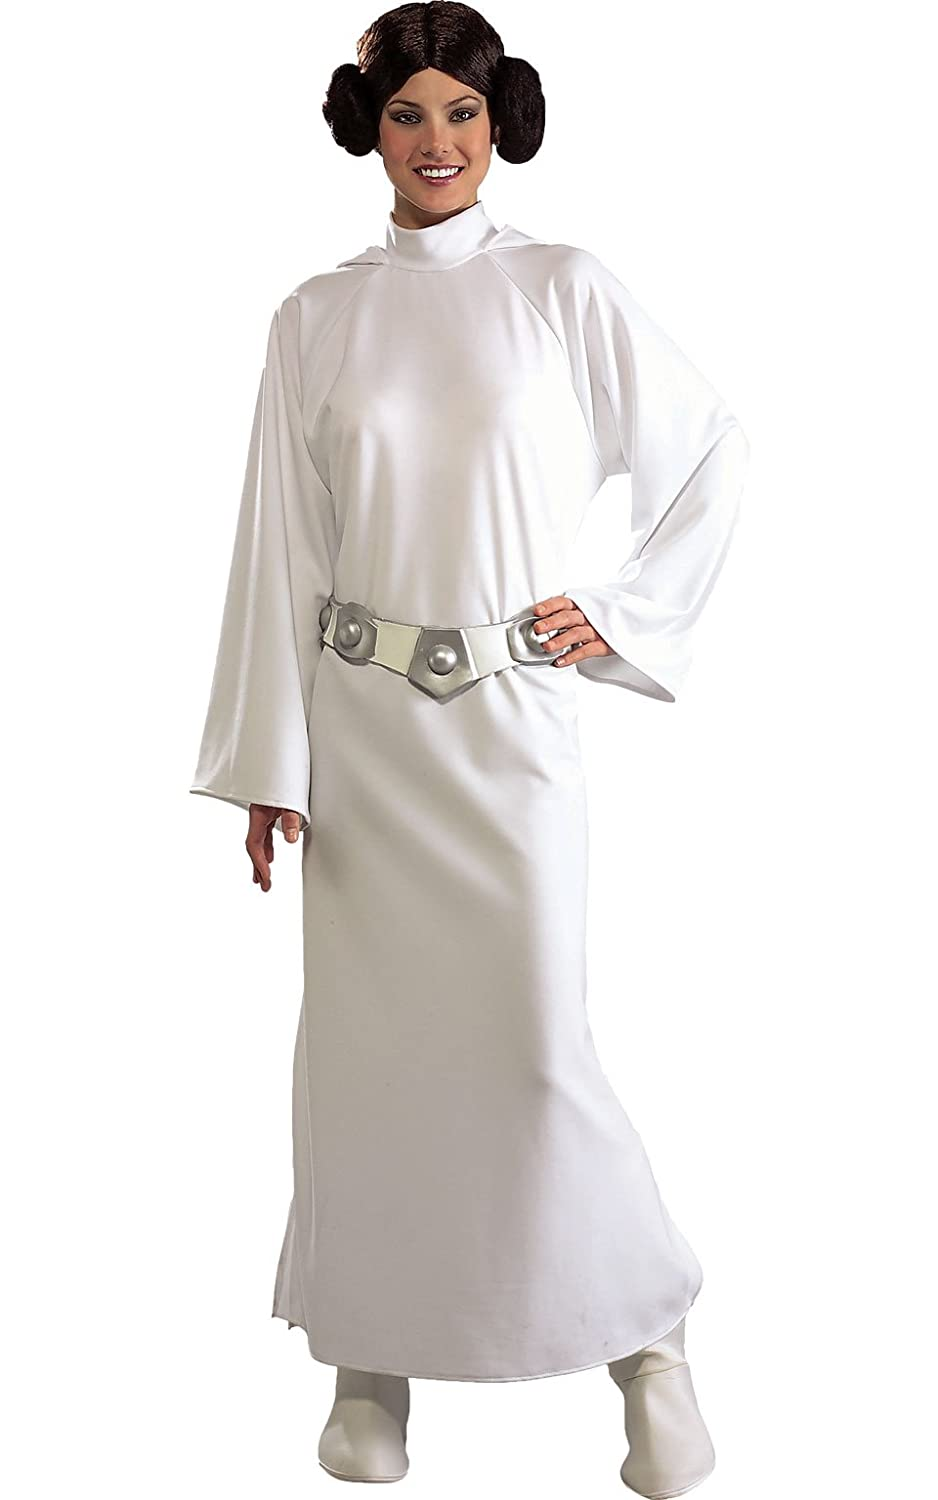 amazon com star wars princess leia deluxe costume clothing